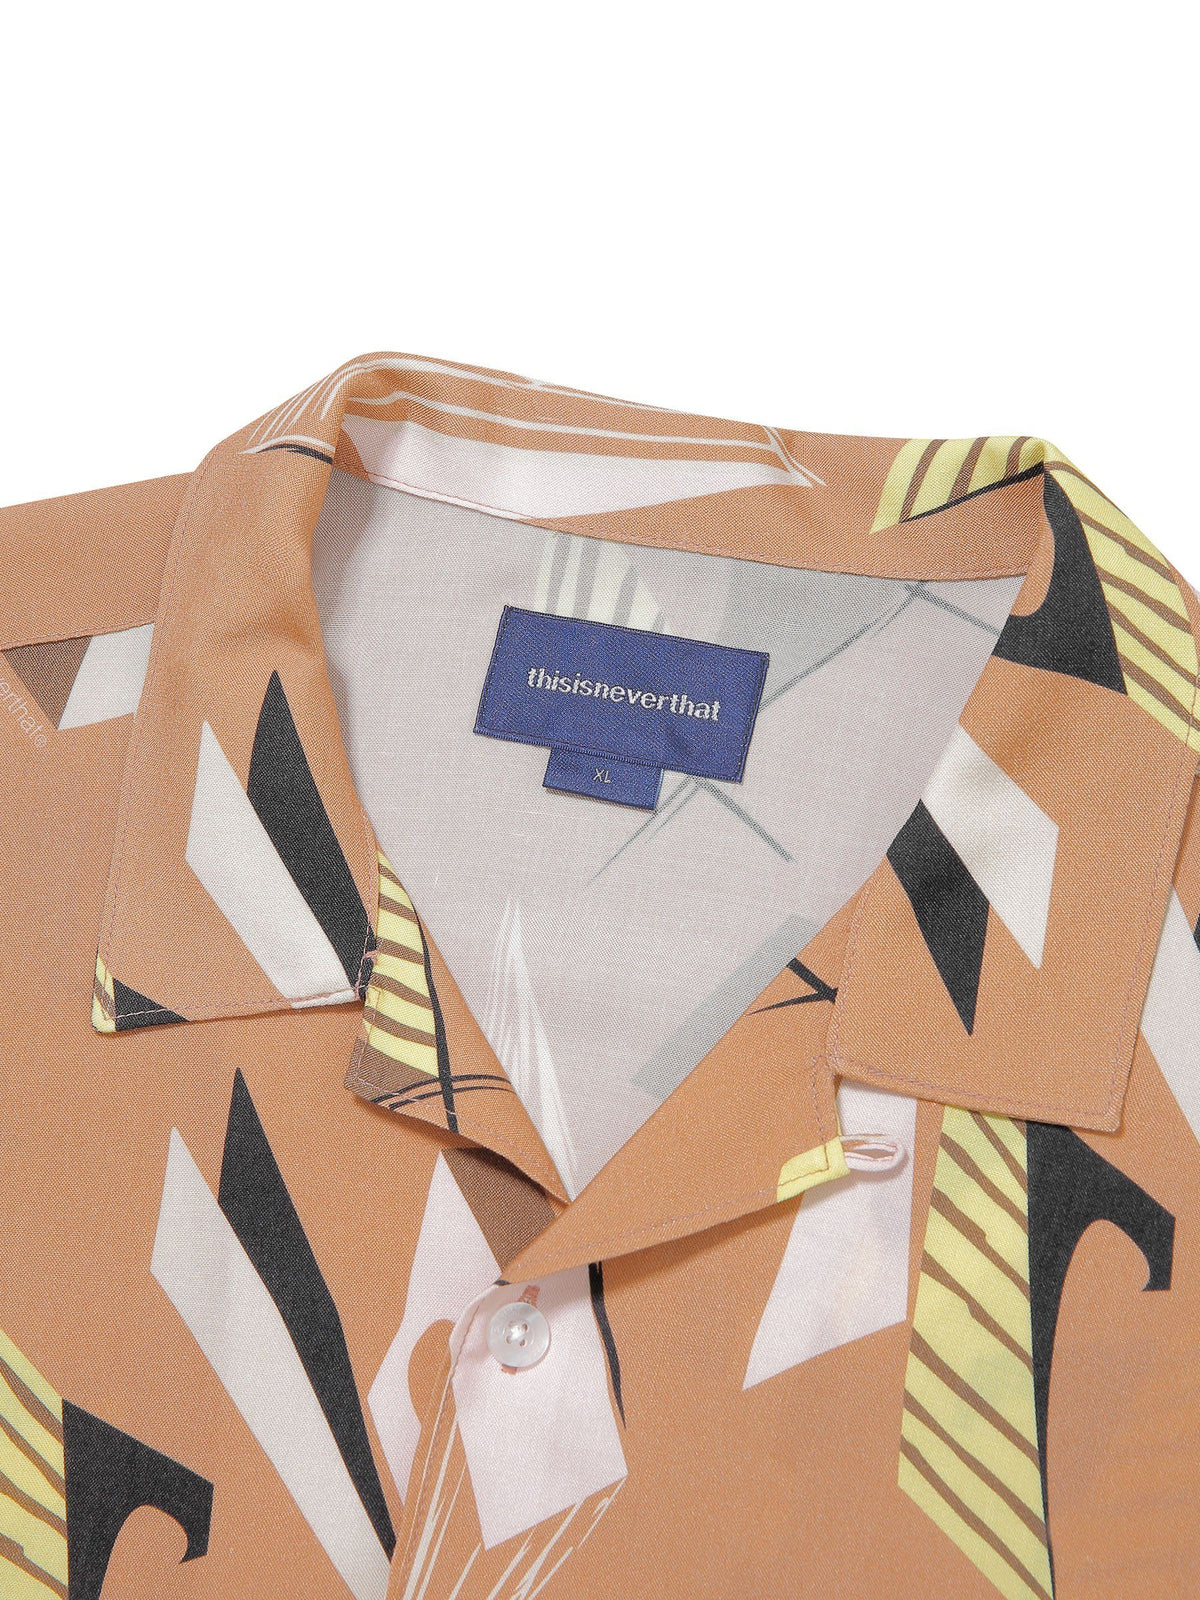 80'S CT S/S Shirt - thisisneverthat